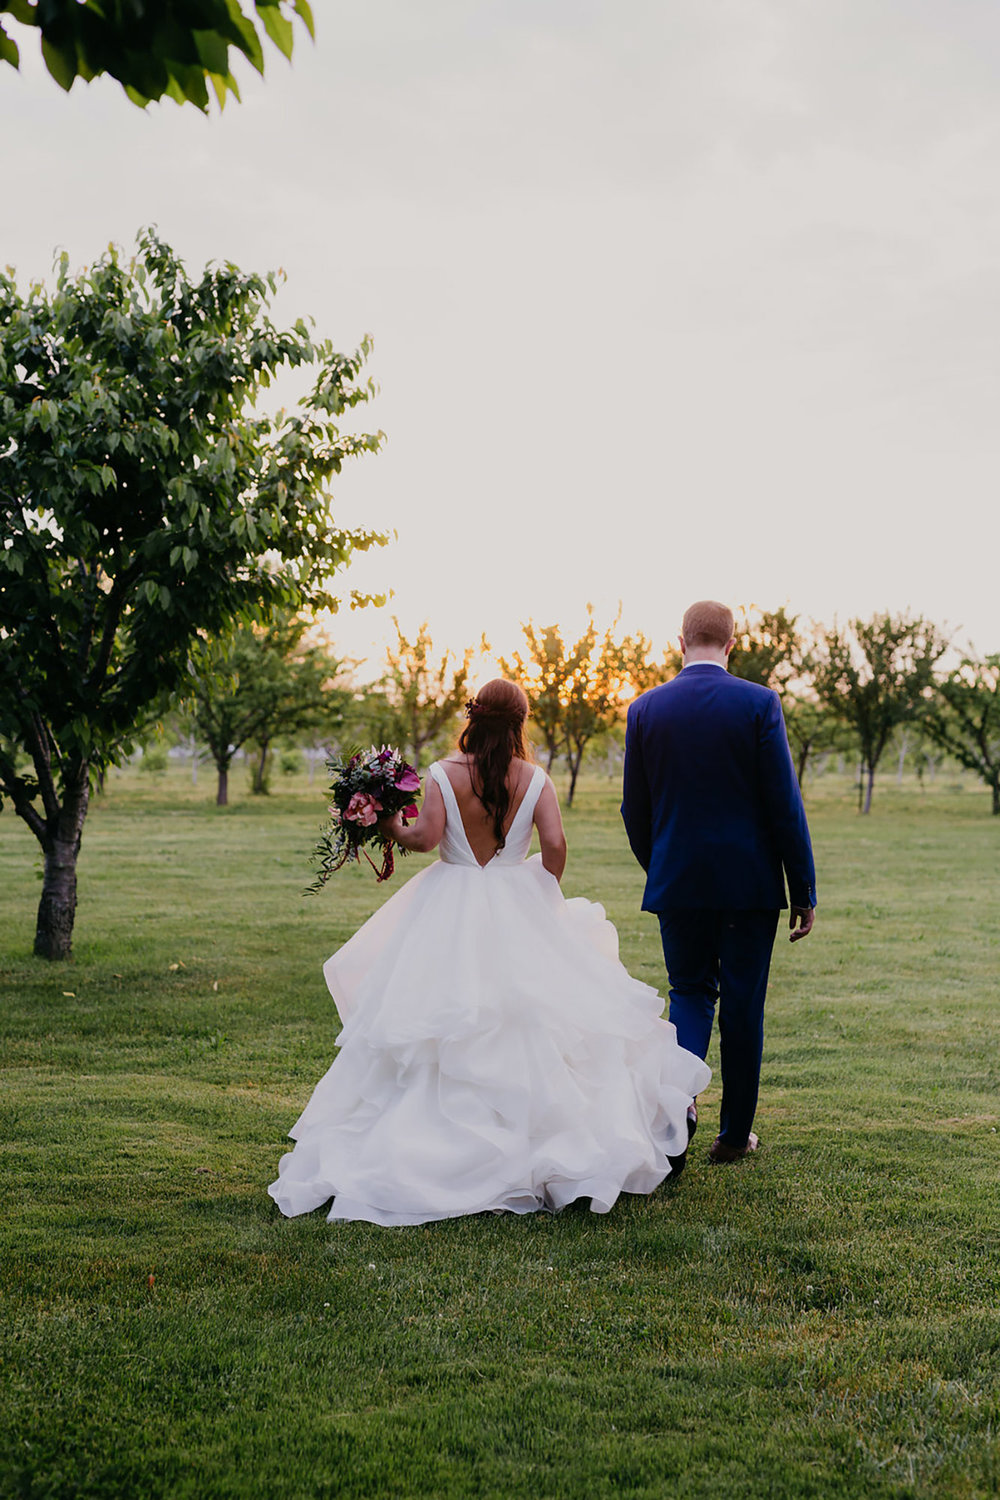 Kurtz-Orchards-Wedding-Niagara-wedding-Vineyard-Bride-Photography-by-Kayla-Rocca-048.JPG